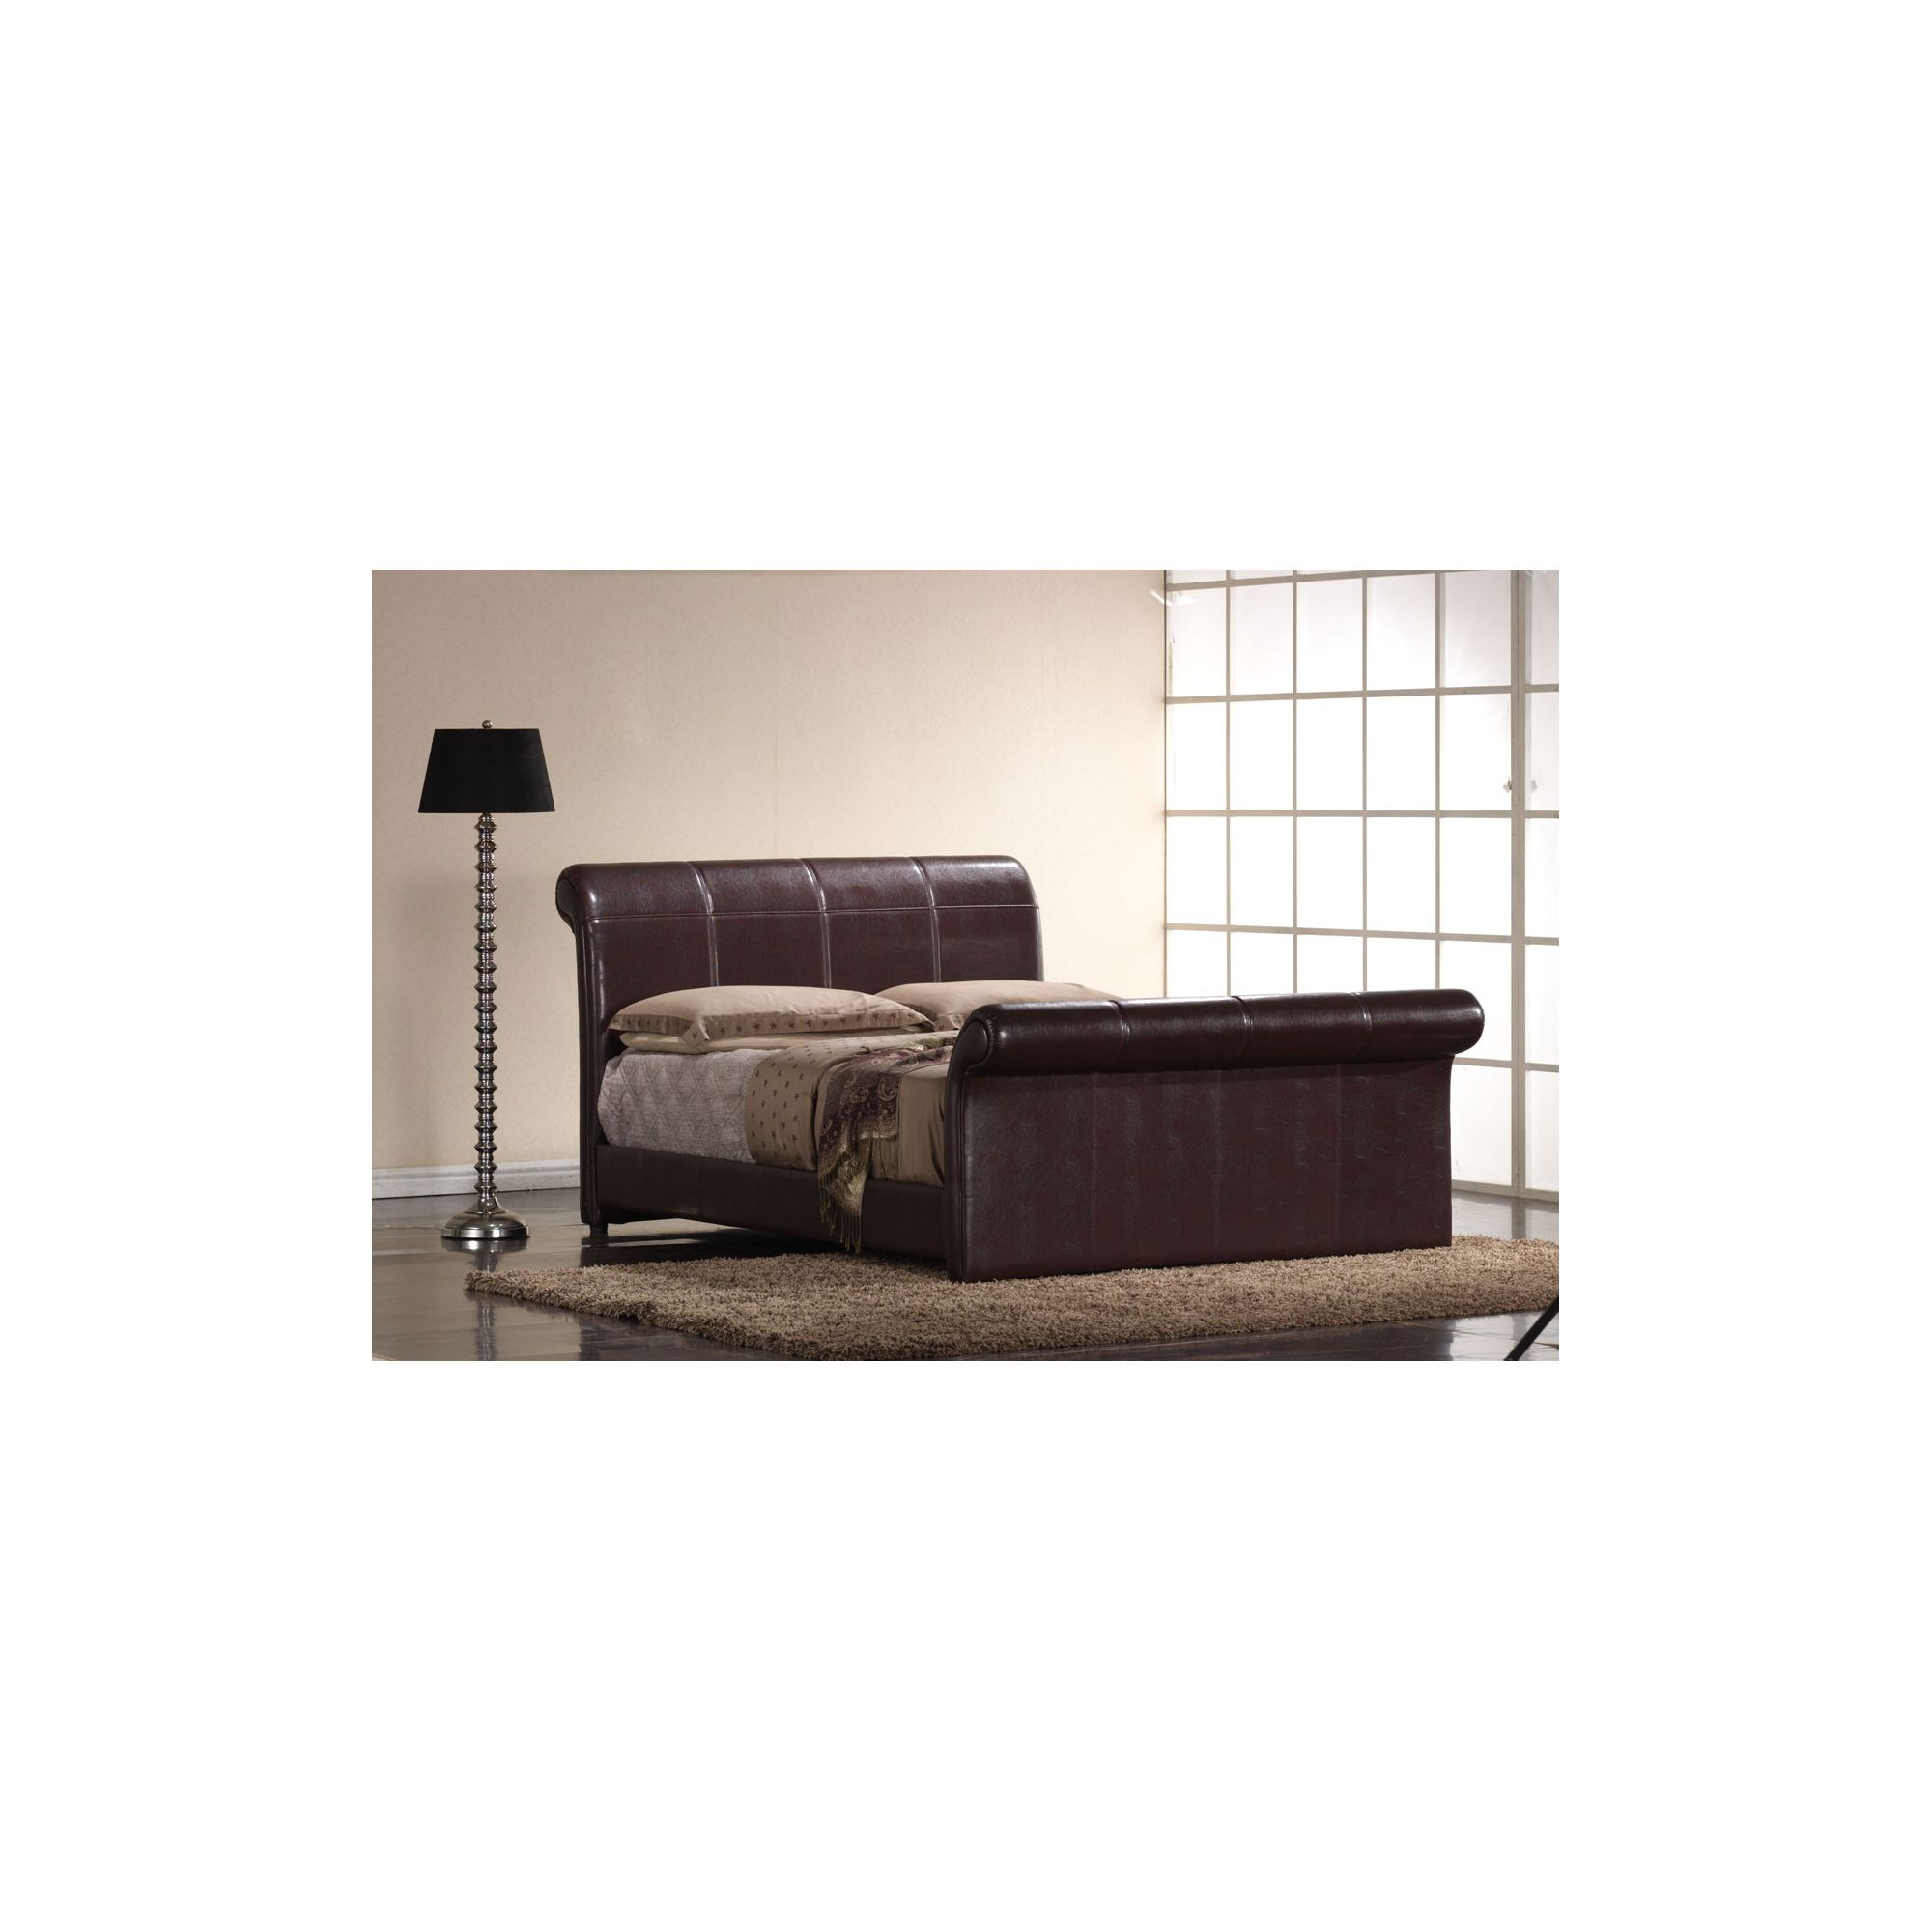 Interiors 2 suit Rome Bedframe - Double - Brown at Tesco Direct